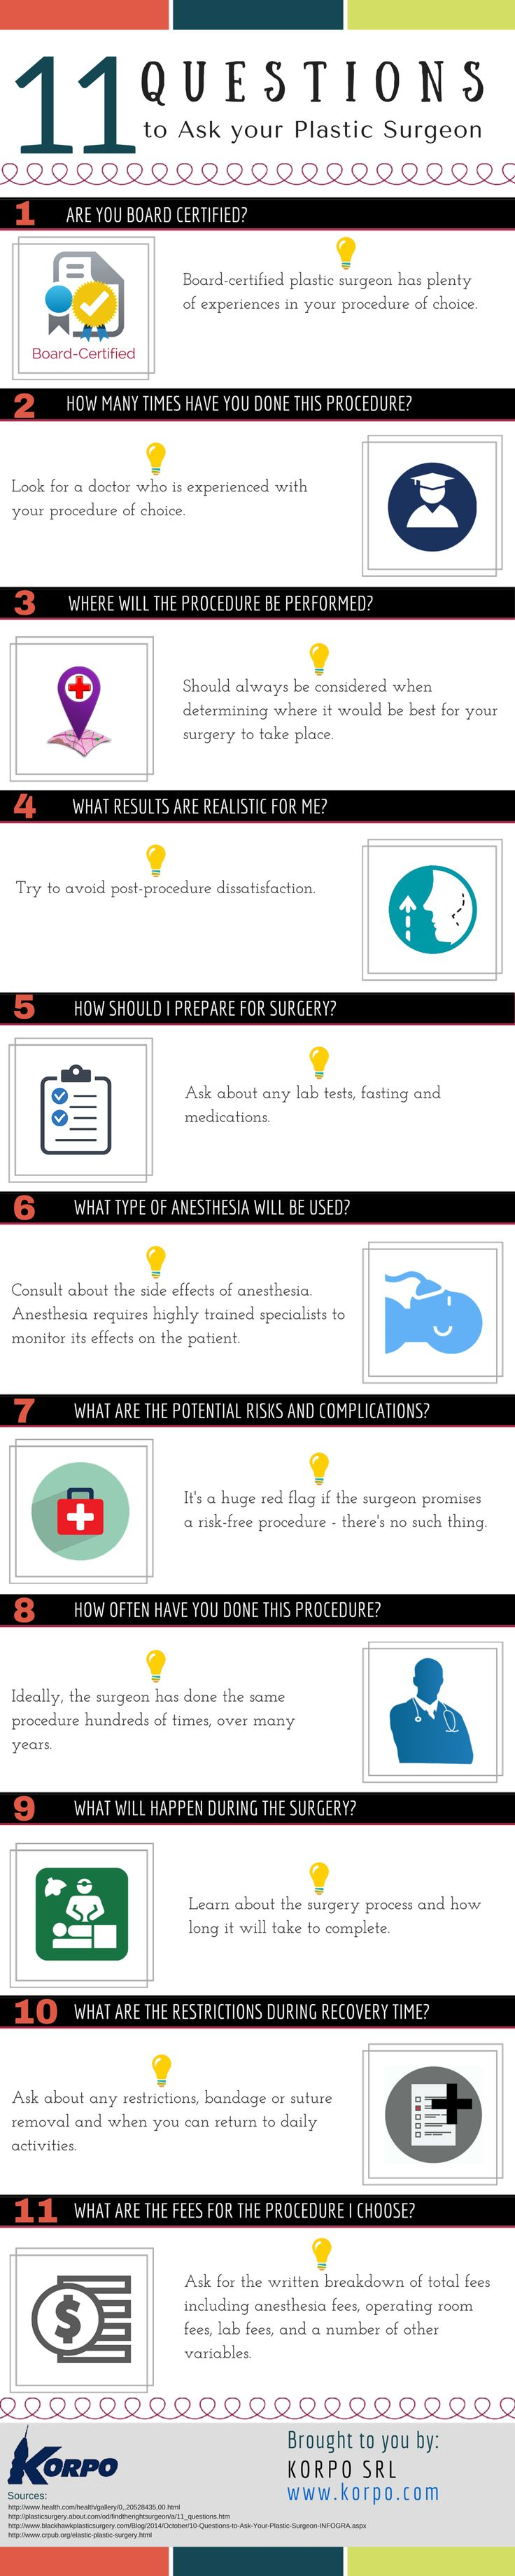 parasta ideaa plastic surgery iss atilde curren  infographic 11 questions to ask your plastic surgeon these 11 questions are the most